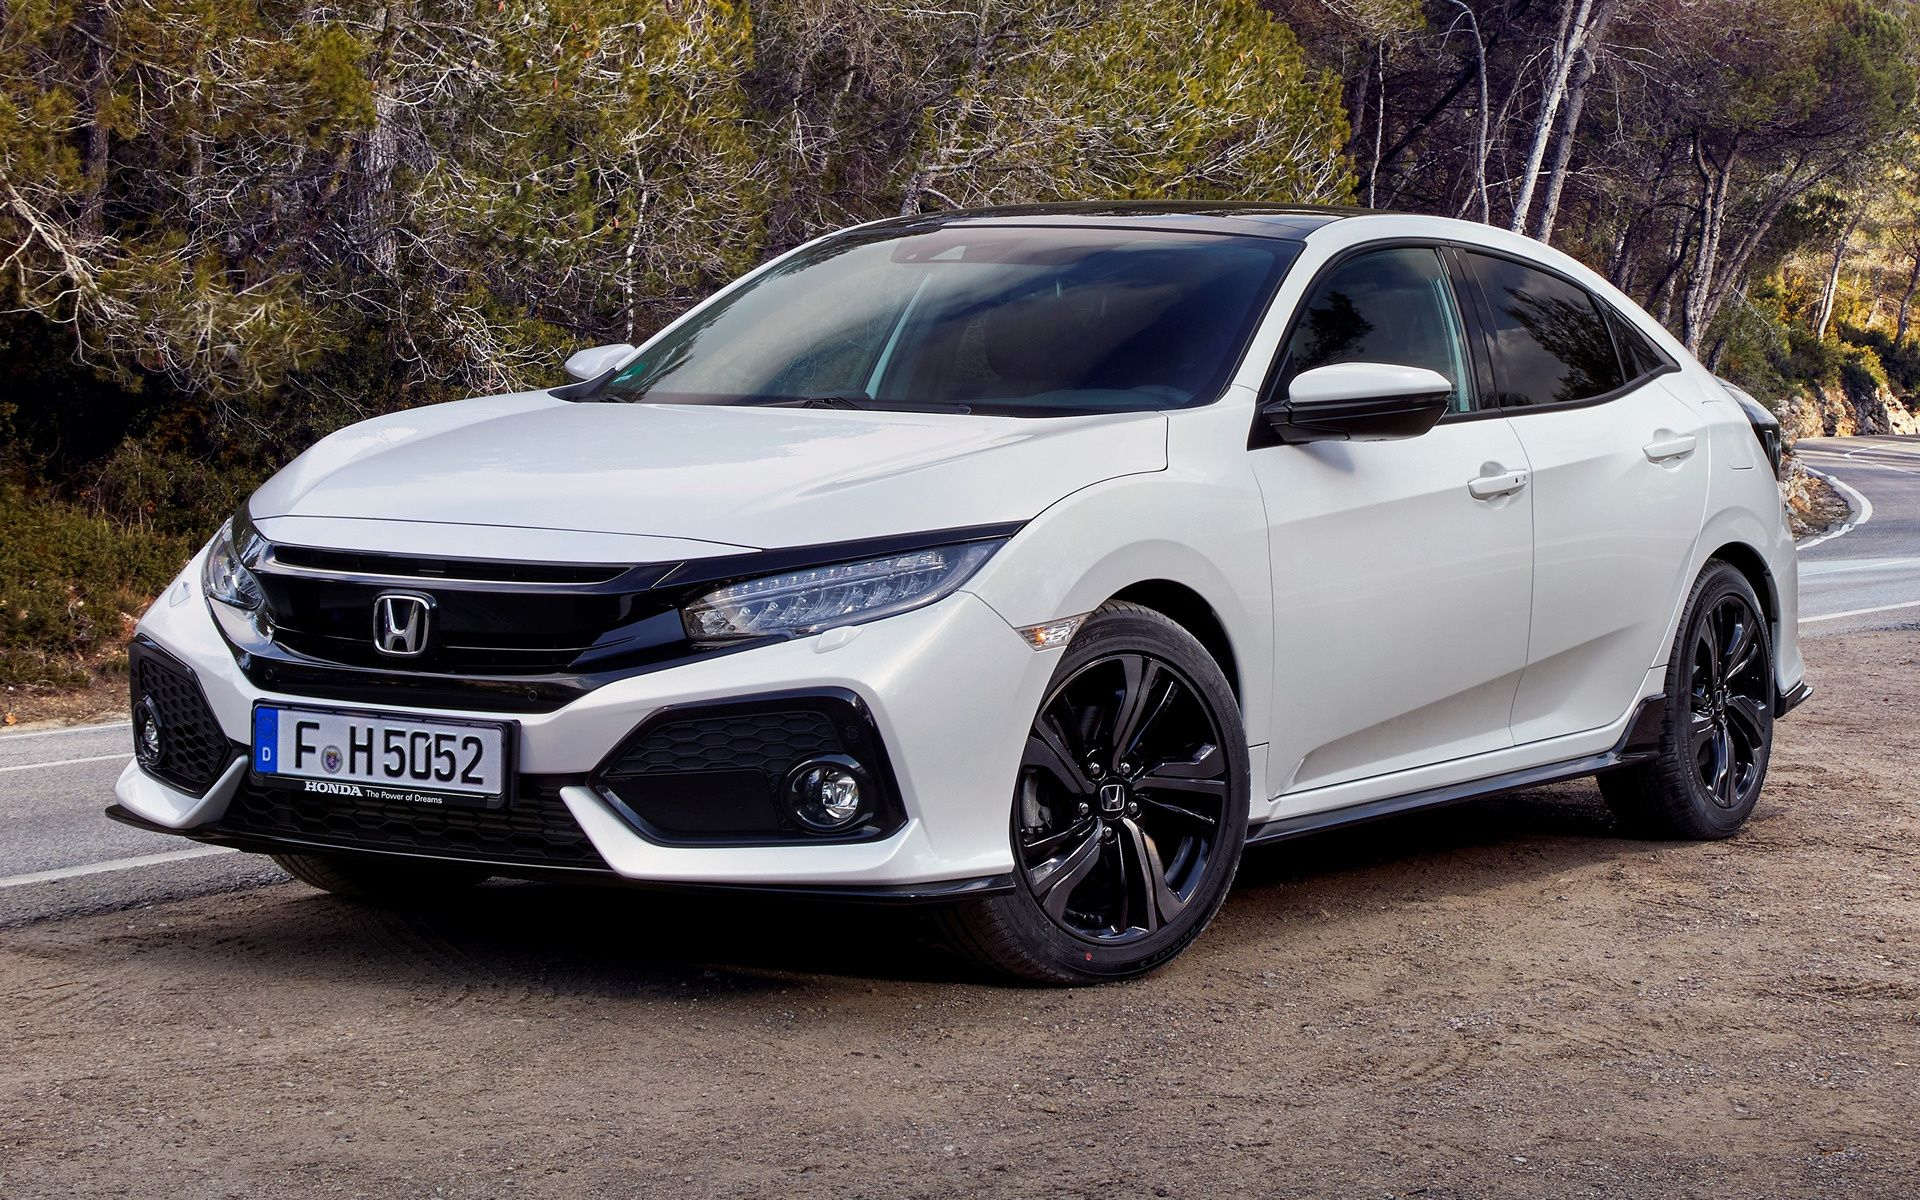 Honda Civic Sport Car Wallpaper 62075 (1920×